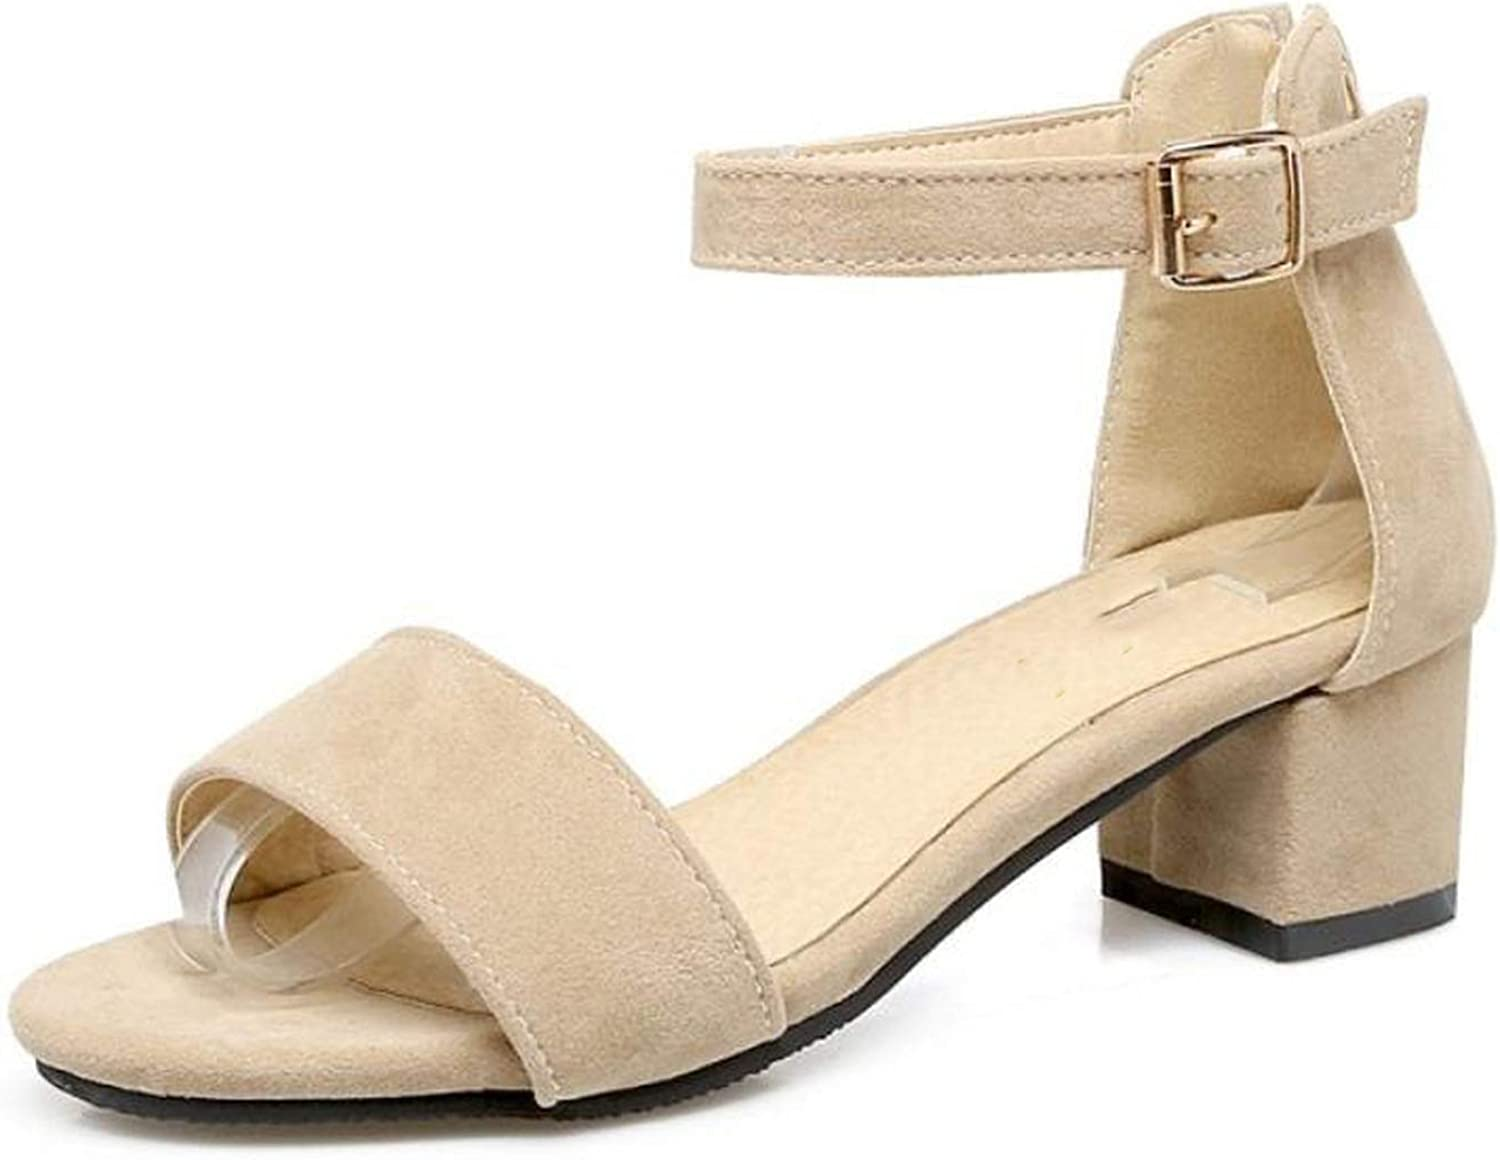 Fairly shoes Mid Heels Buckle Simply Summer shoes Fashion Casual Party Sexy shoes,Beige,13.5